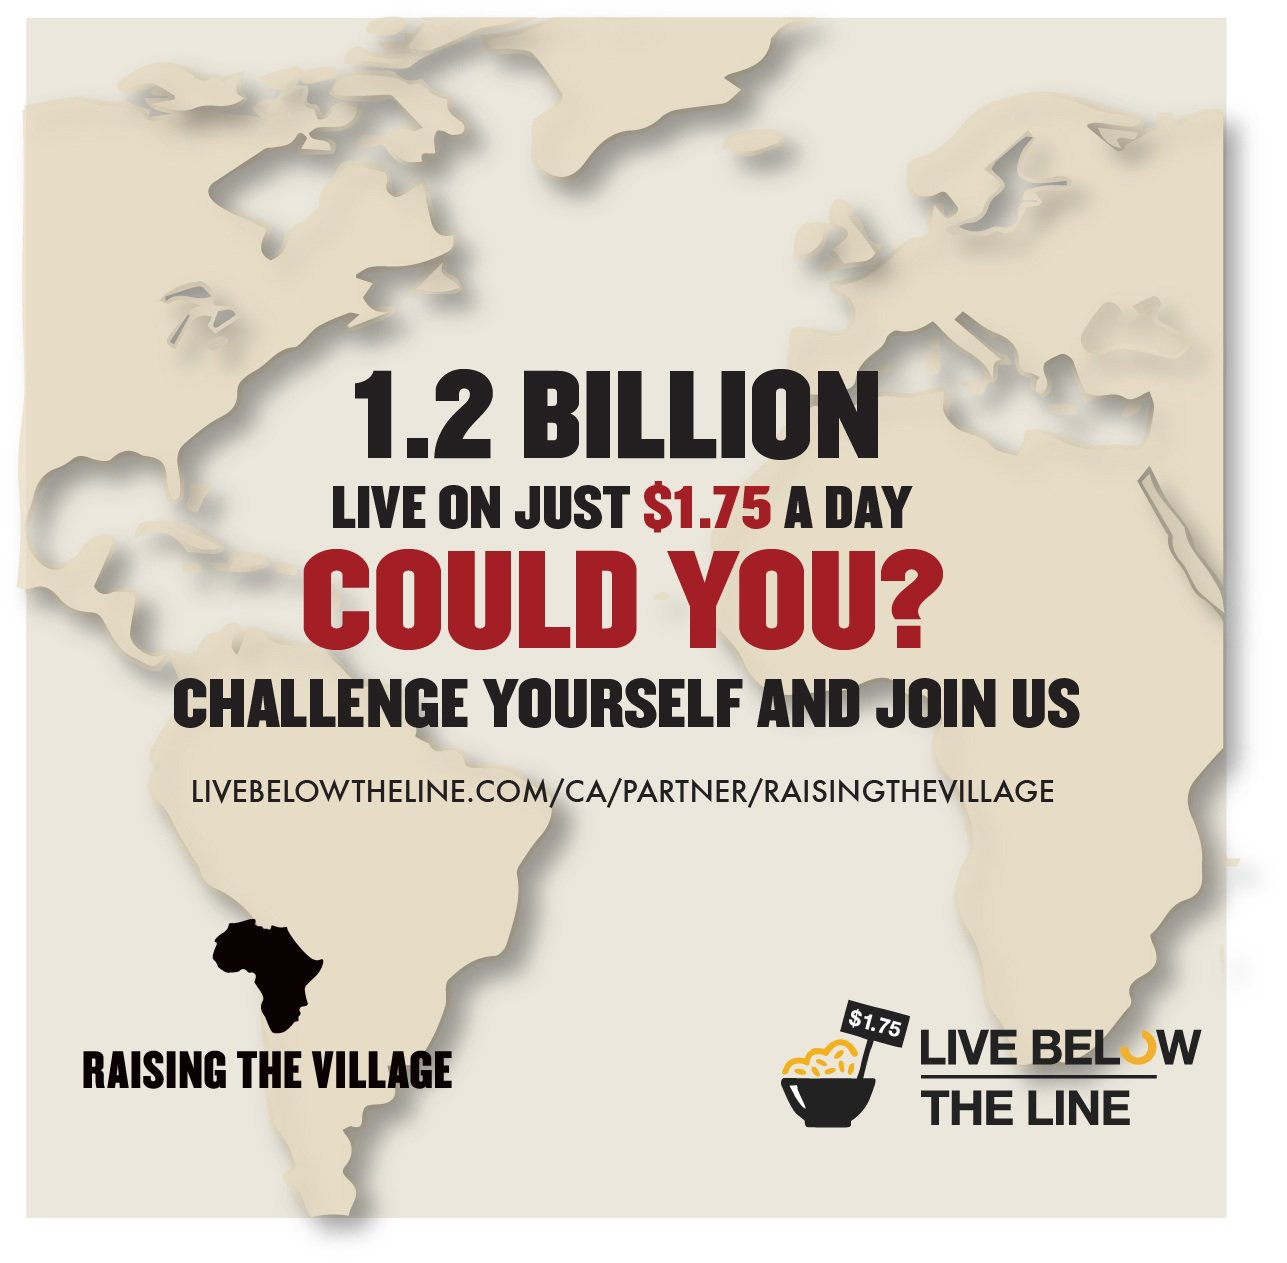 The Global Poverty Project: Live Below the Line Challenge